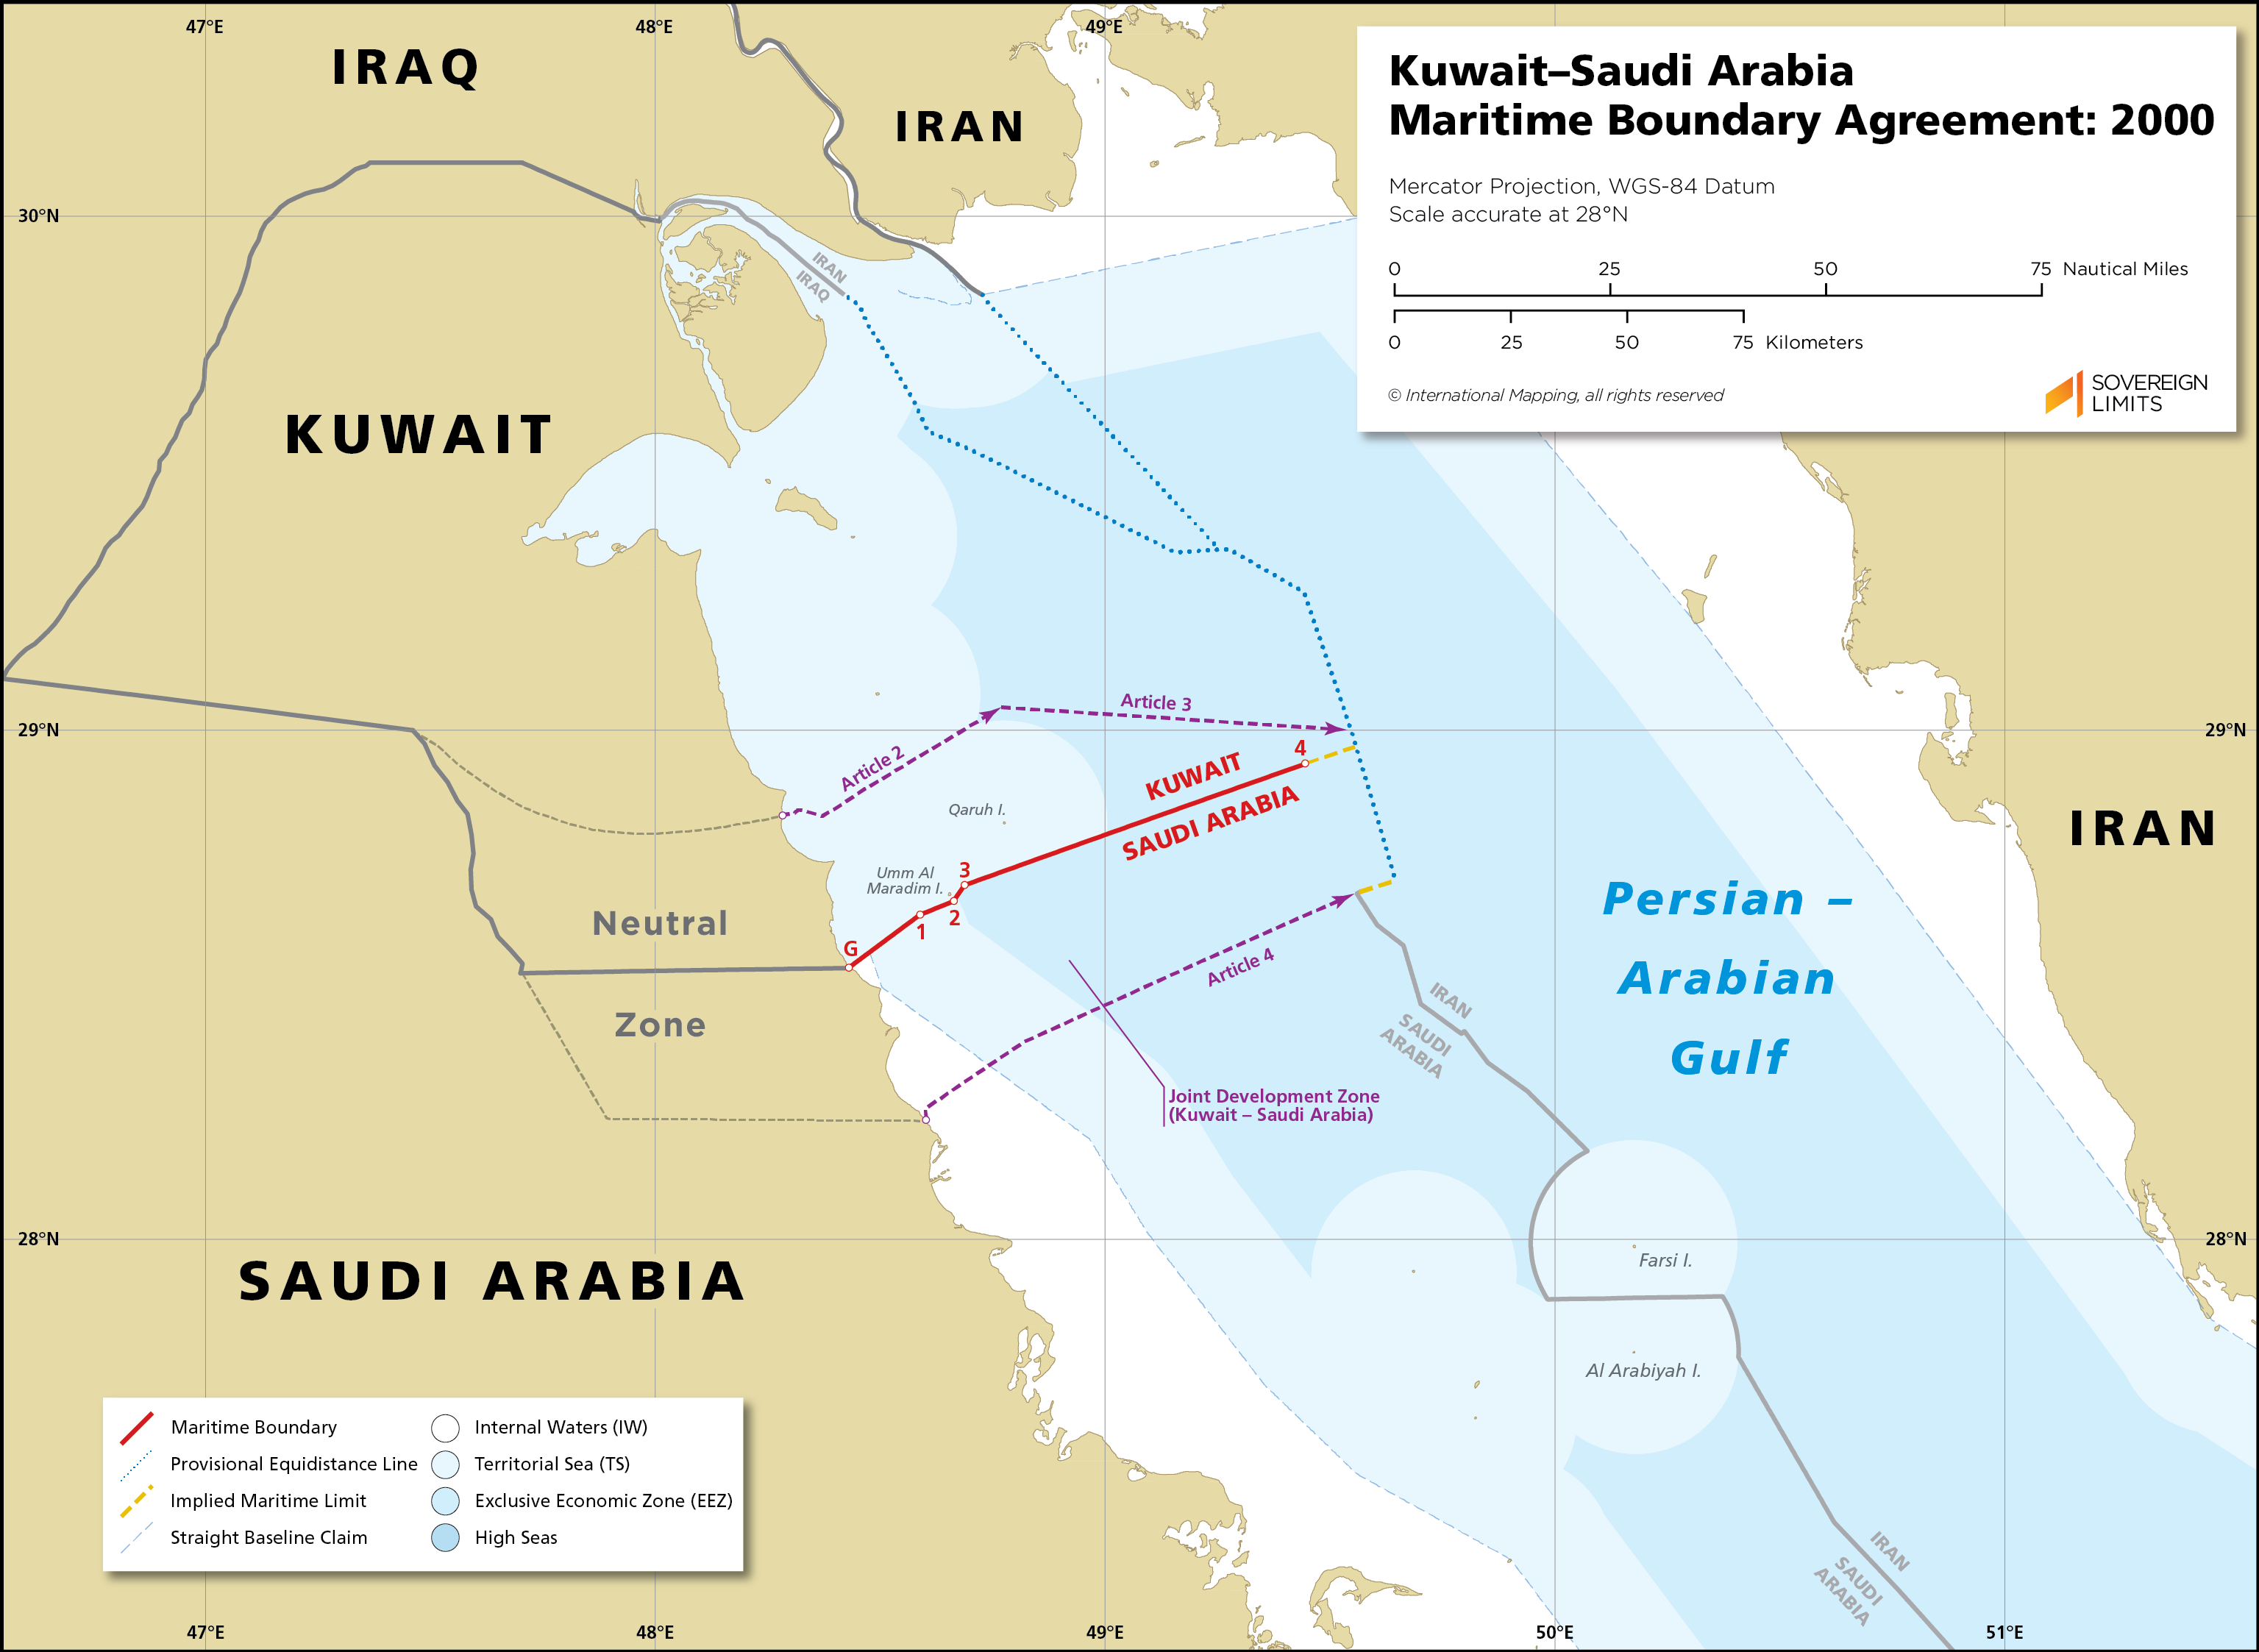 Map showing the maritime boundary between Kuwait and Saudi Arabia